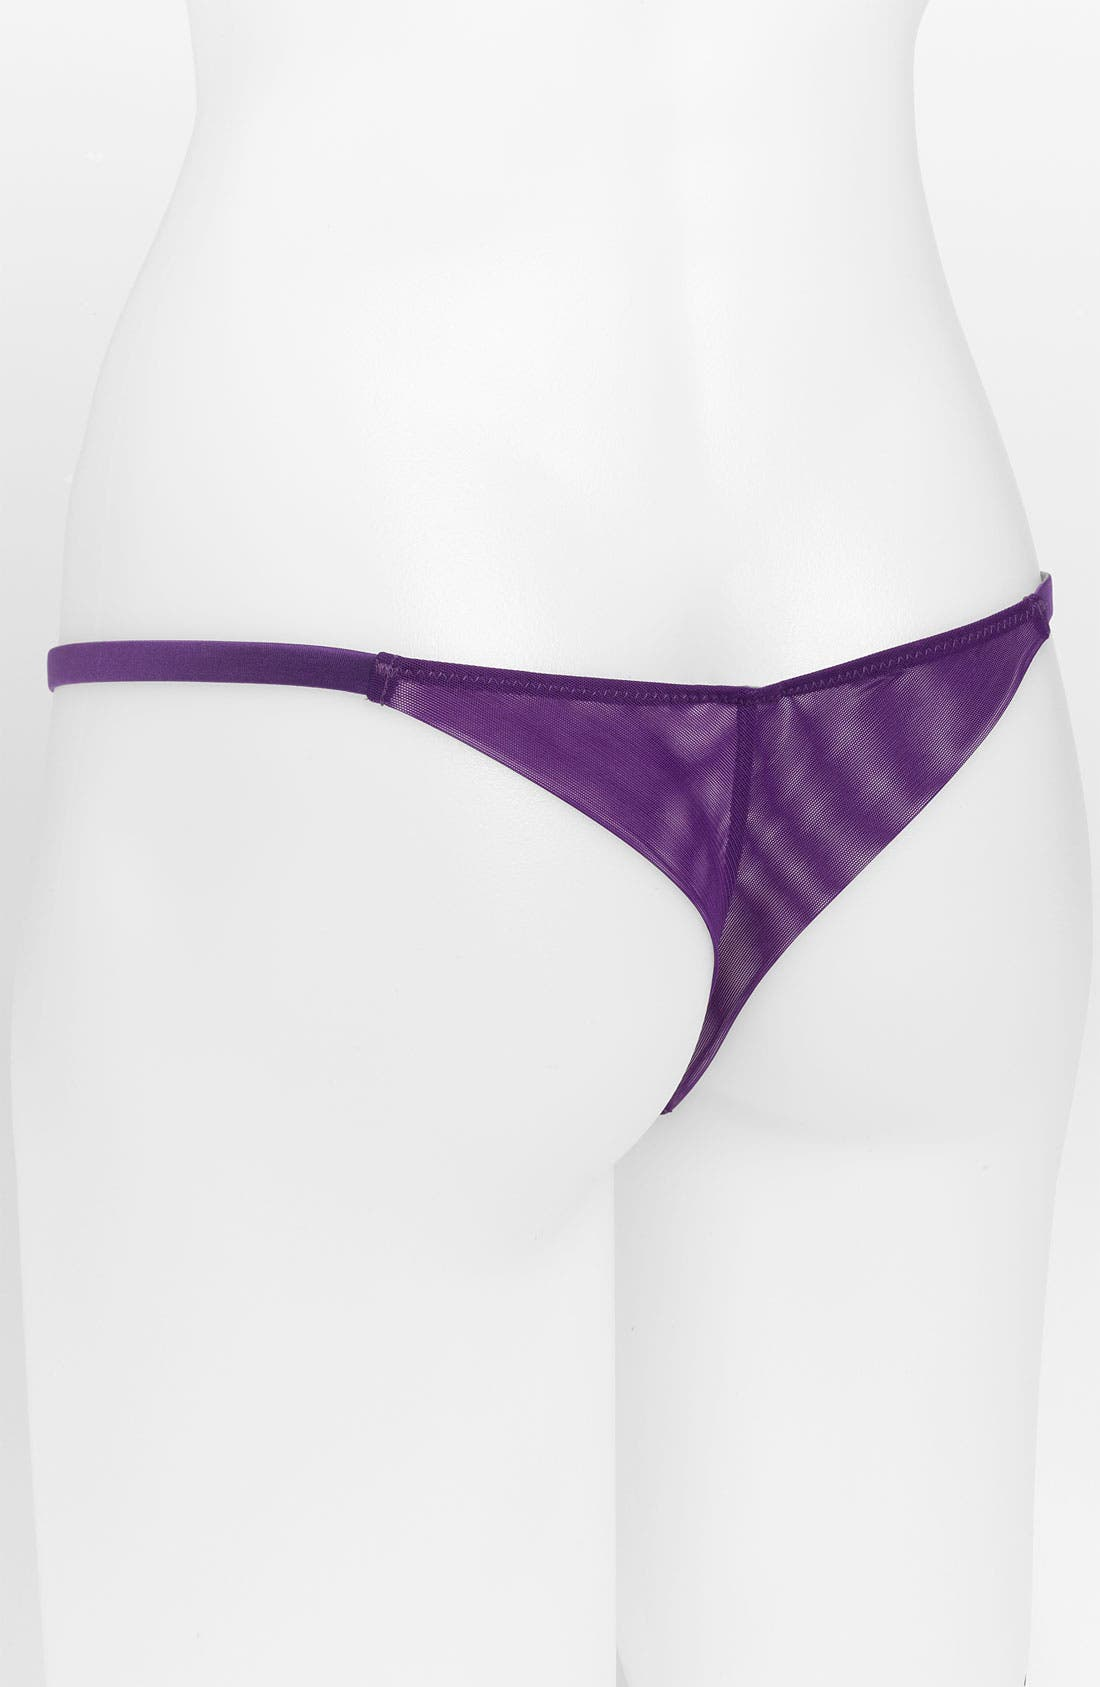 Alternate Image 2  - La Perla 'Manhattan' Thong